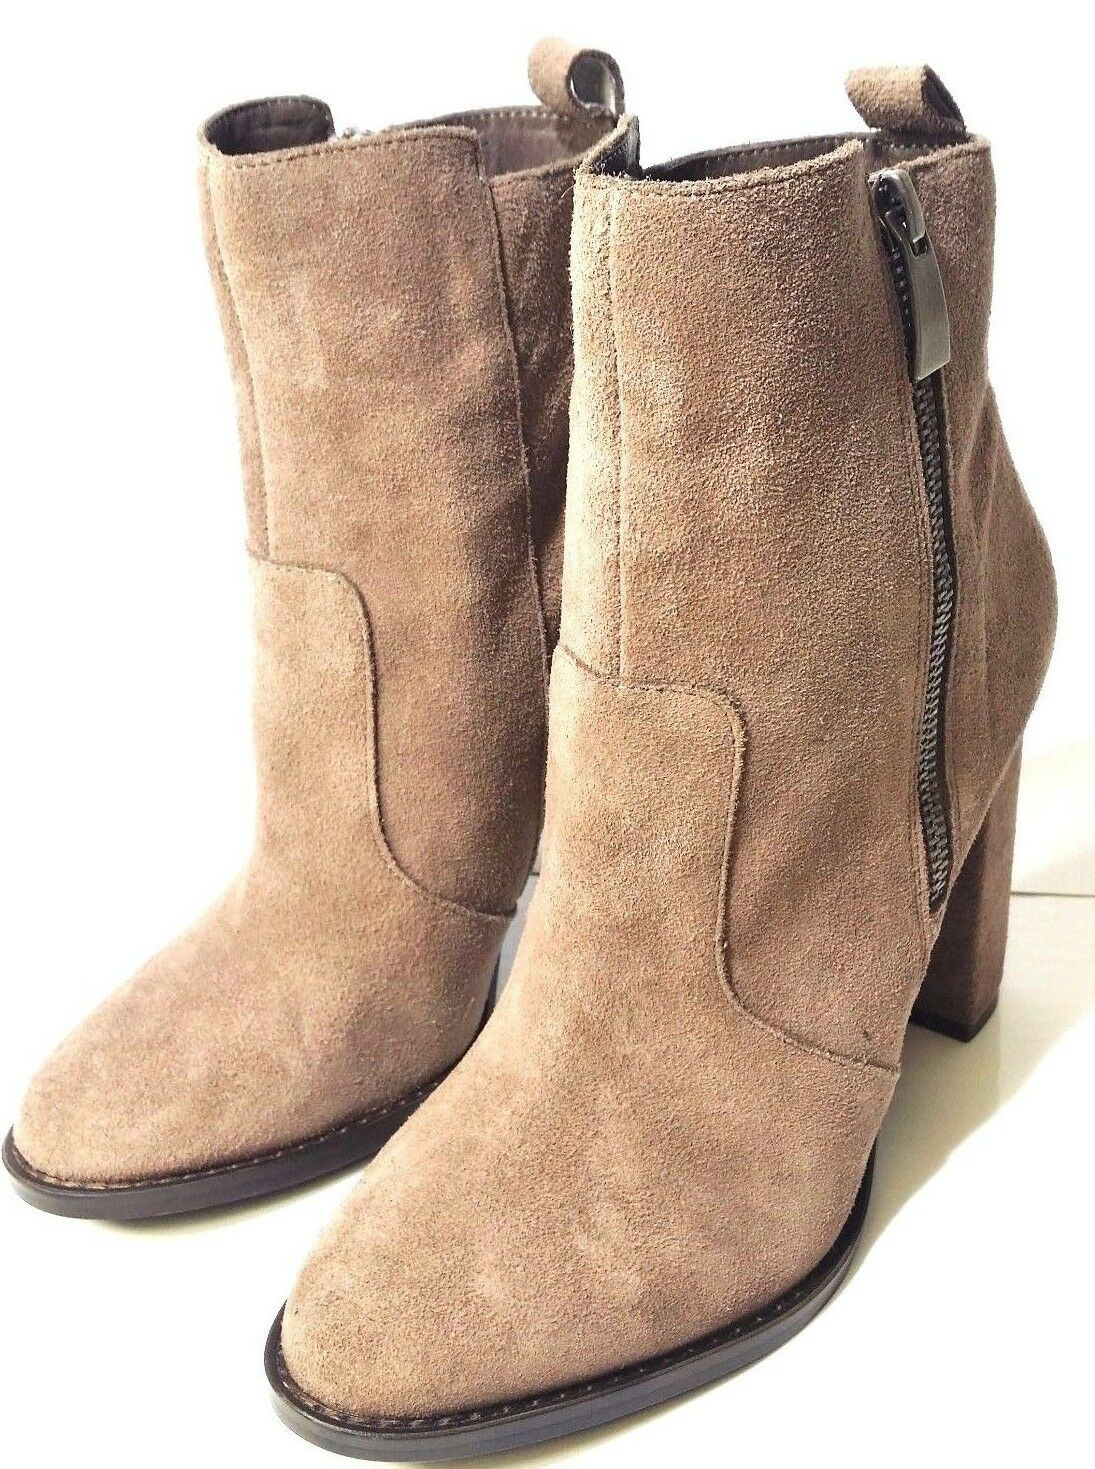 Steve Madden Women's Roooler Booties Taupe US Size 6 M NEW. LIMITED DEAL ONLY 1